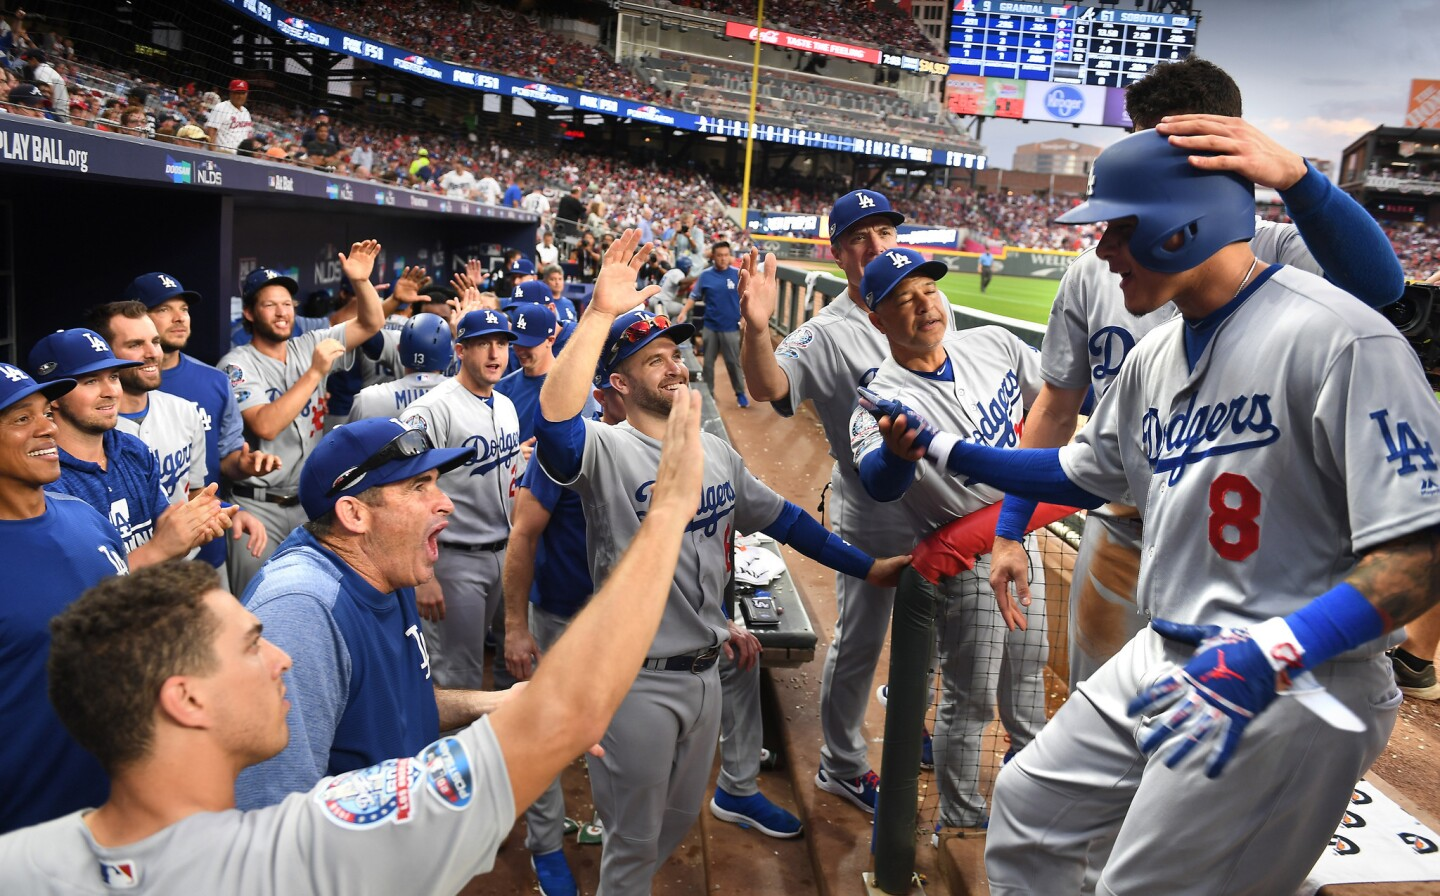 Dodgers shortstop Manny Machado is congratulated by teammates and coaches after hitting a three-run home run in the seventh inning.